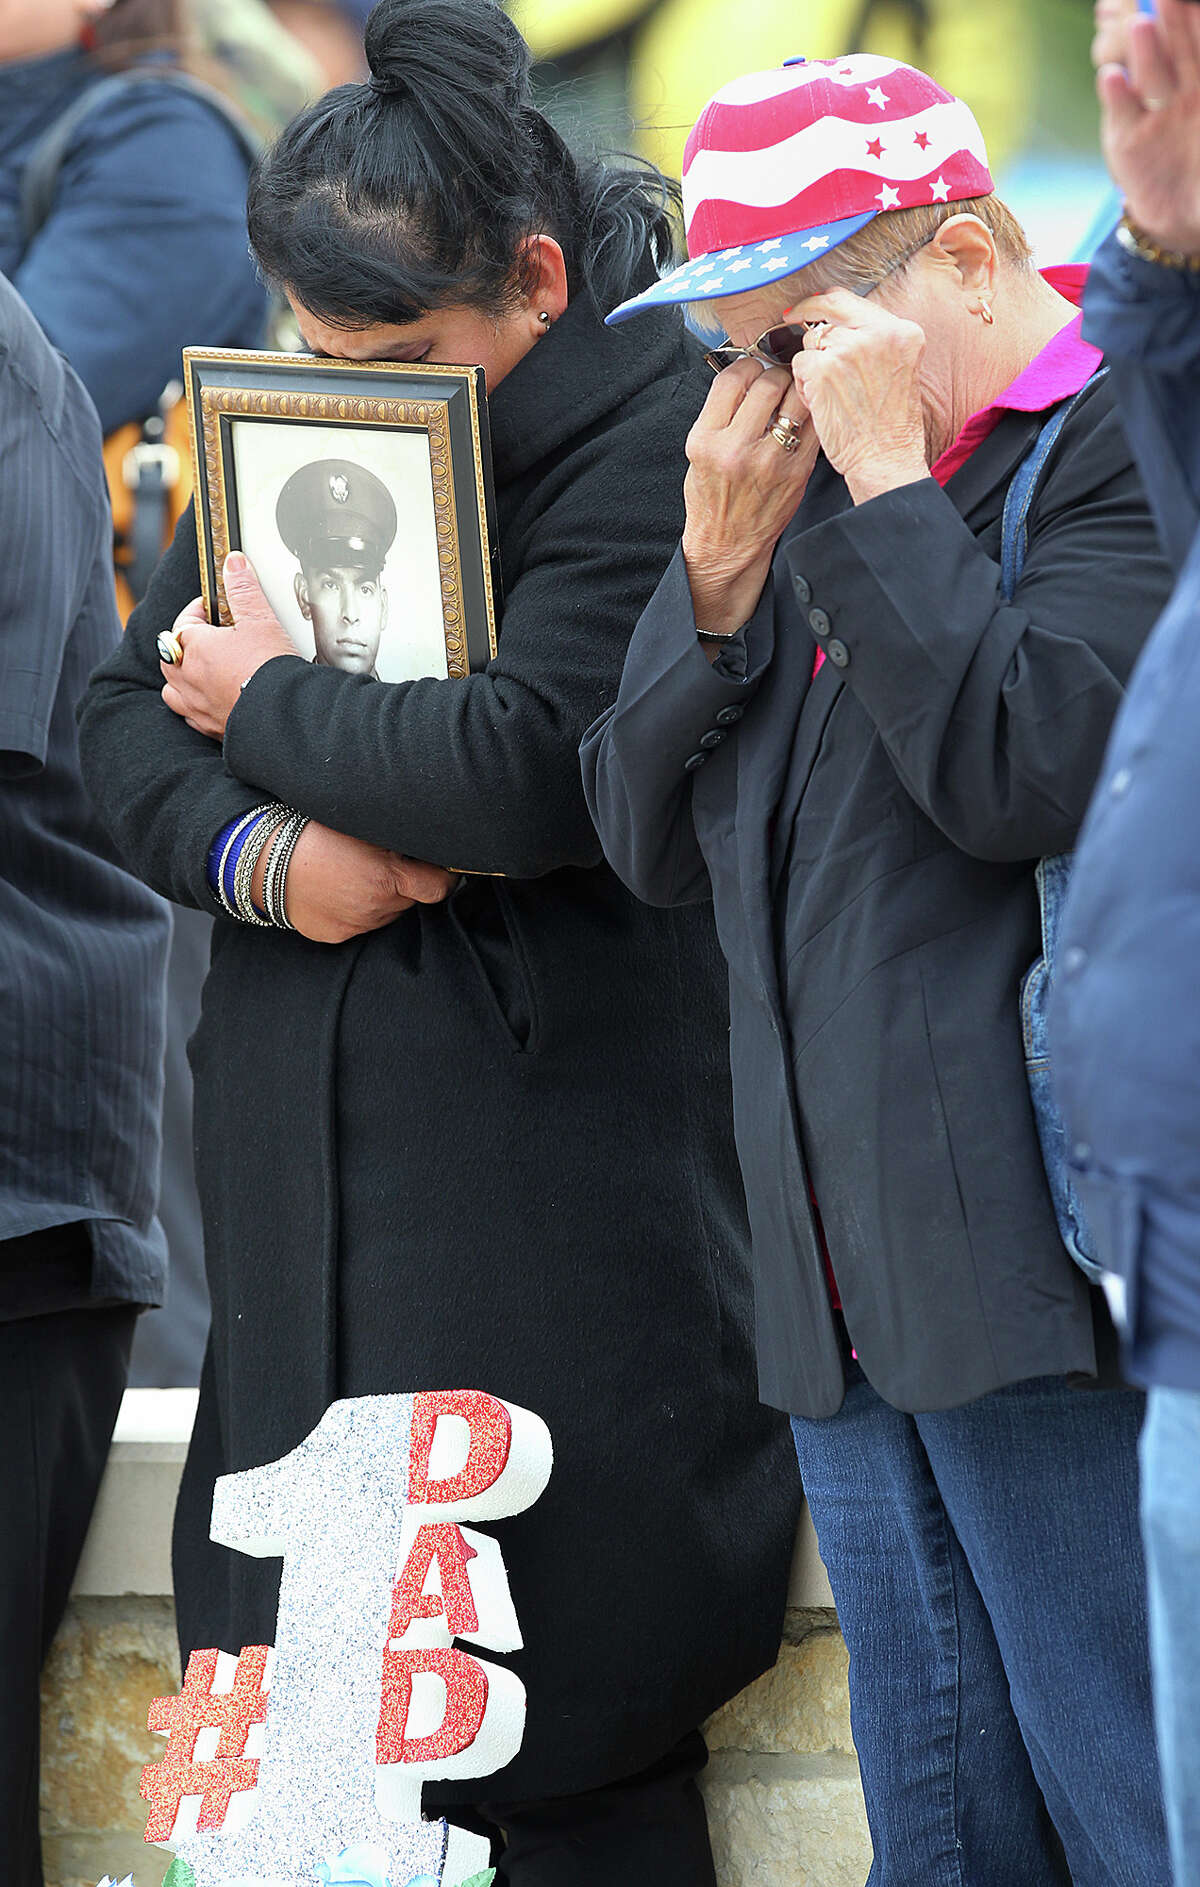 As Taps is played, Maria Becerra, left, and Adelina Shires react during a Veteran's Day tribute at Fort Sam Houston National Cemetery, Tuesday, Nov. 11, 2014. Becerra was holding a portrait of her father, Cesario Becerra, a Vietnam veteran.